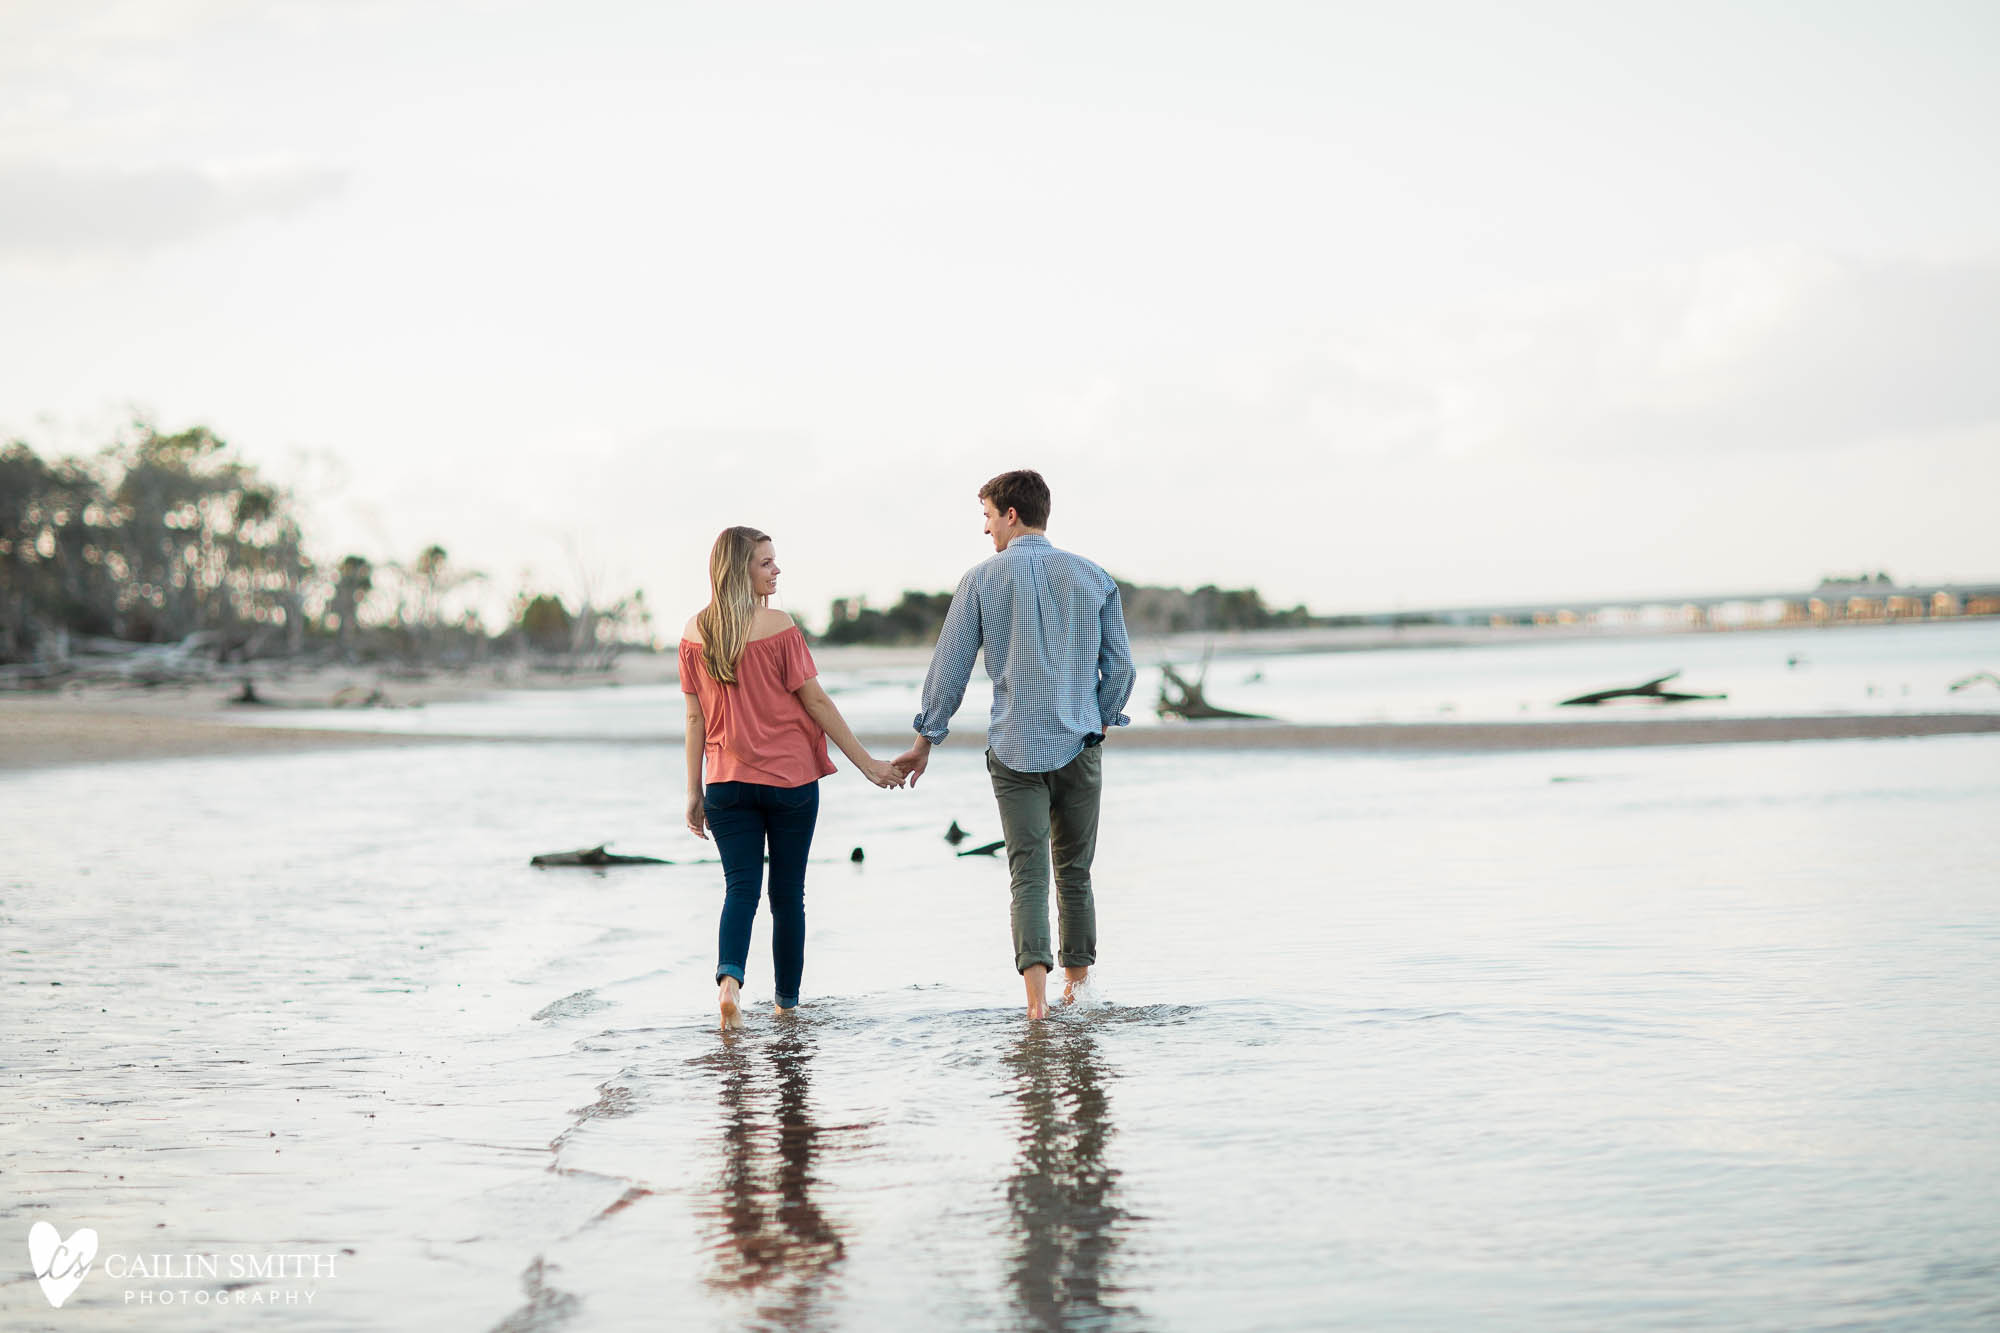 Boneyard_Beach_Engagement_2_017.jpg